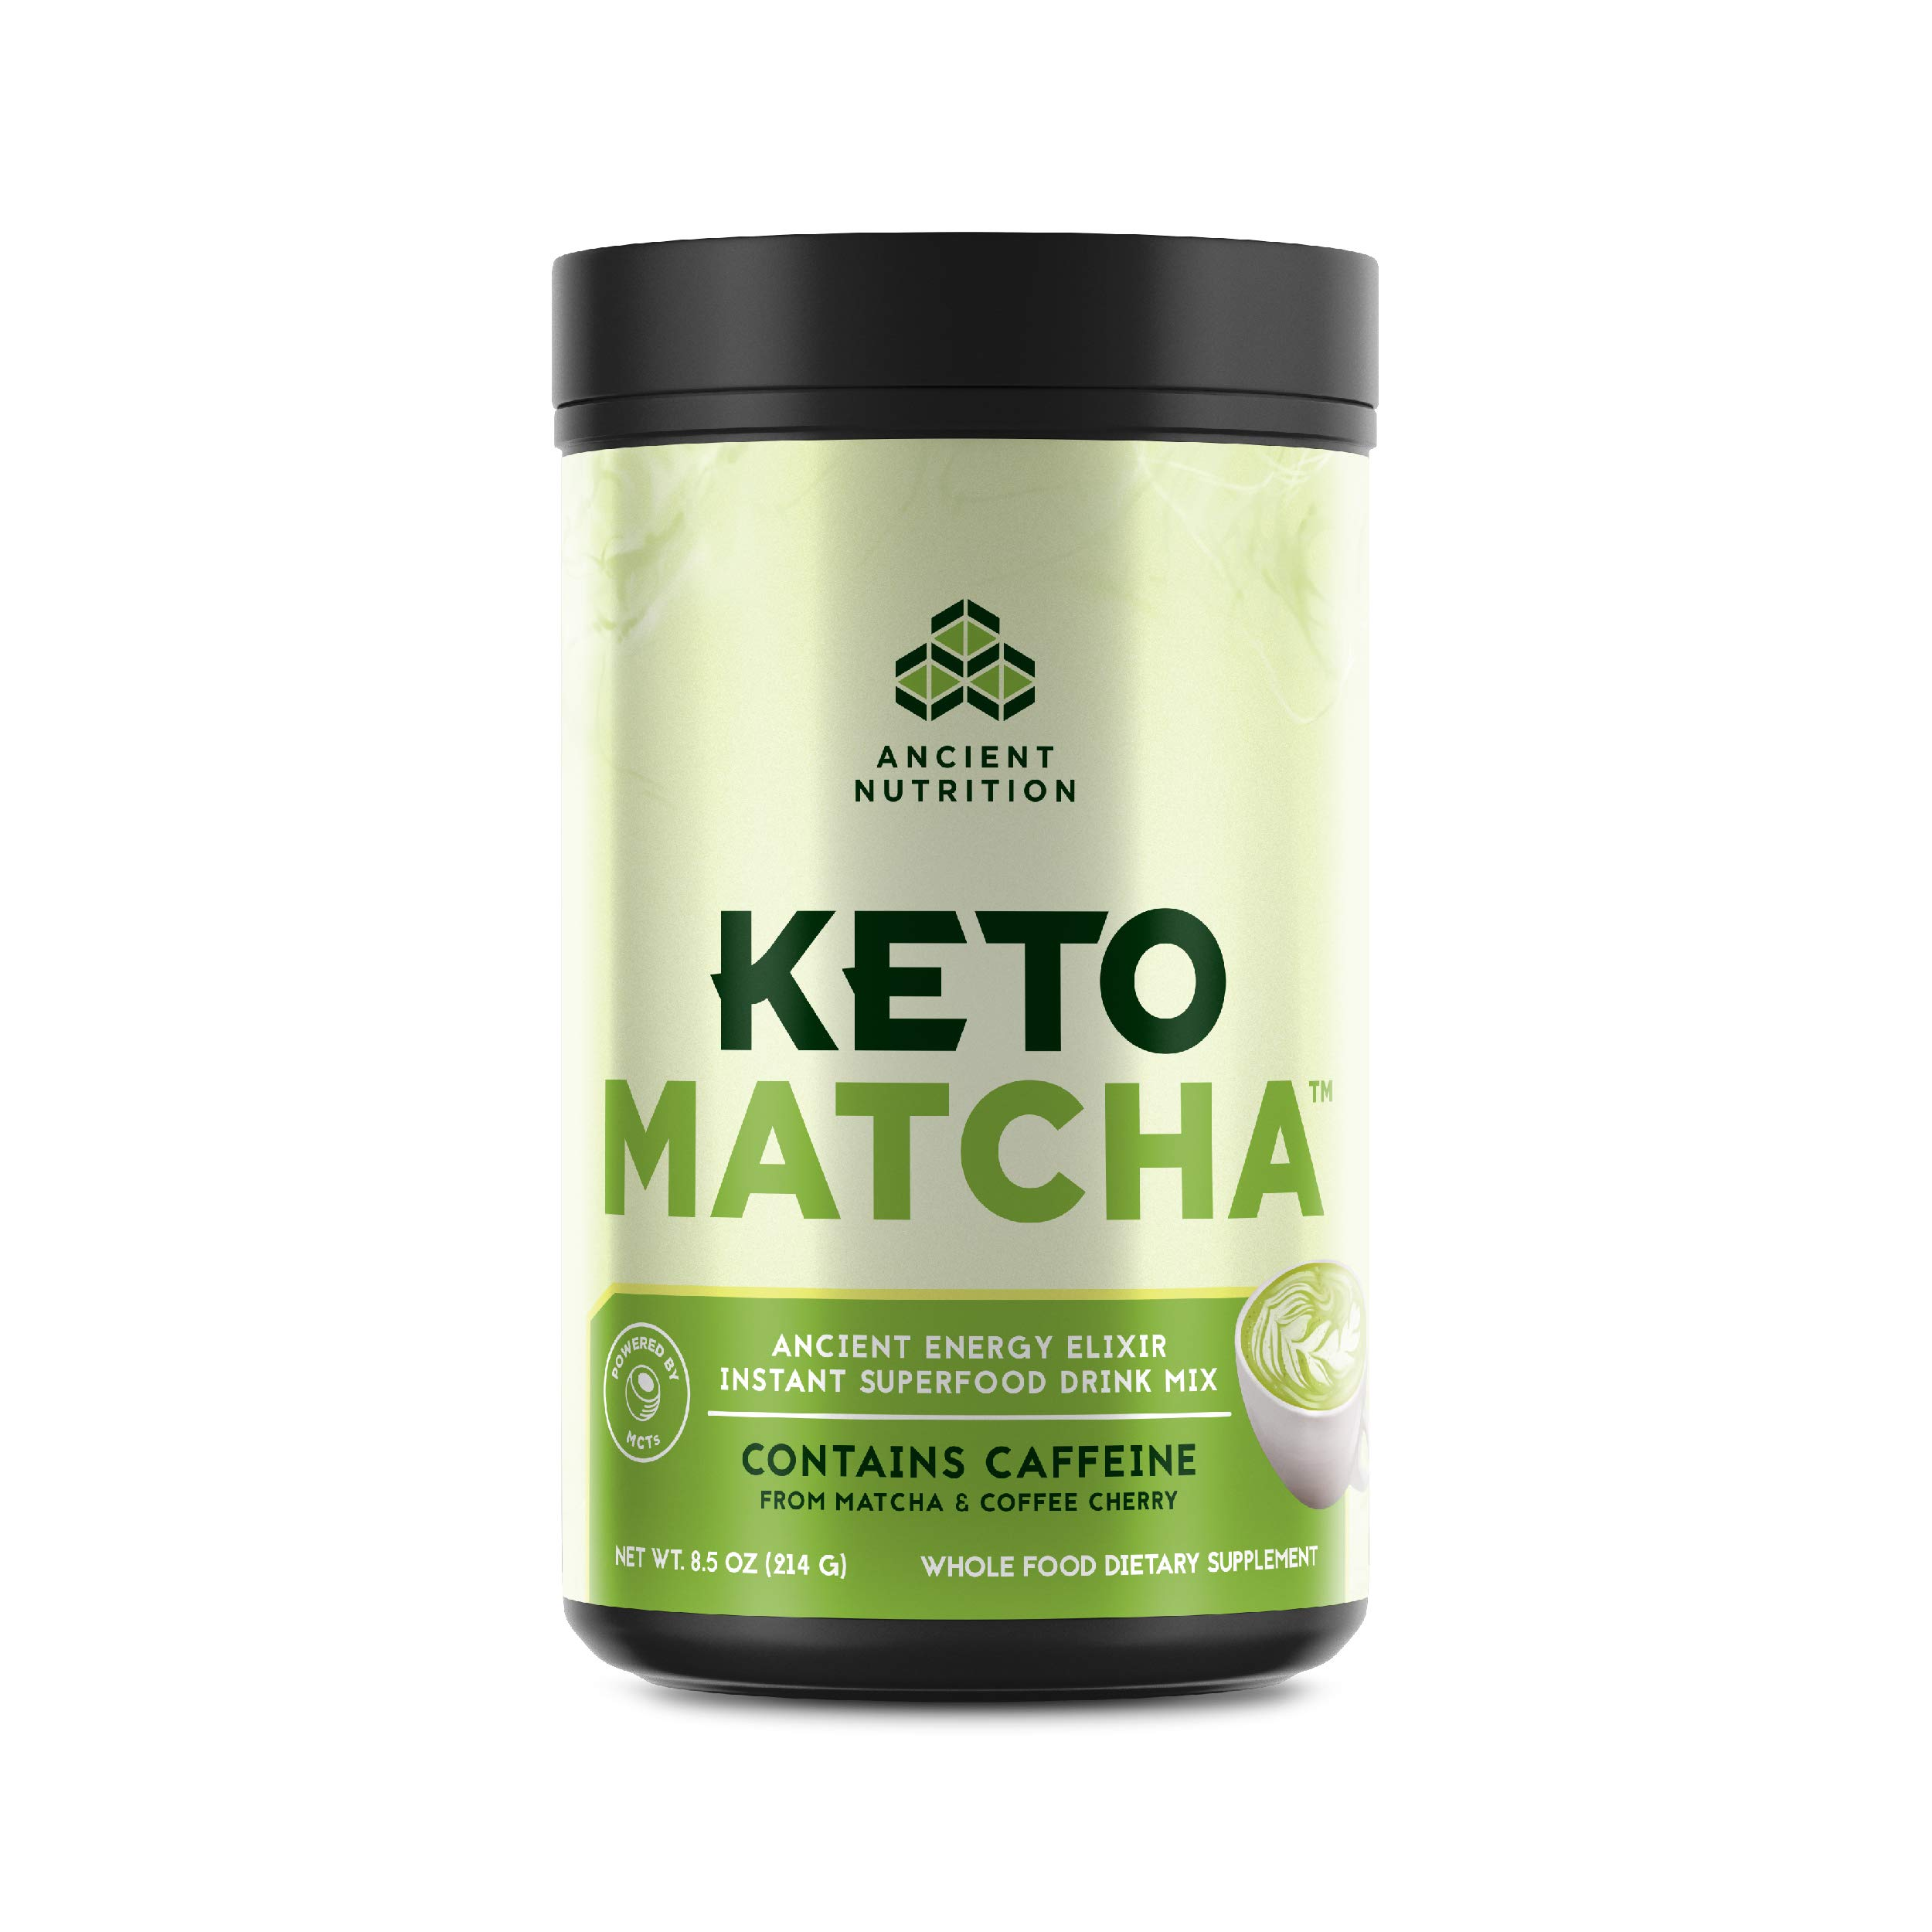 Ancient Nutrition KetoMATCHA Energy Elixir Powder, 20 Servings, Keto Diet Supplement, Hydrolyzed Collagen Peptides, MCTs from Coconut, Green Tea Leaf, Energy Booster by Ancient Nutrition